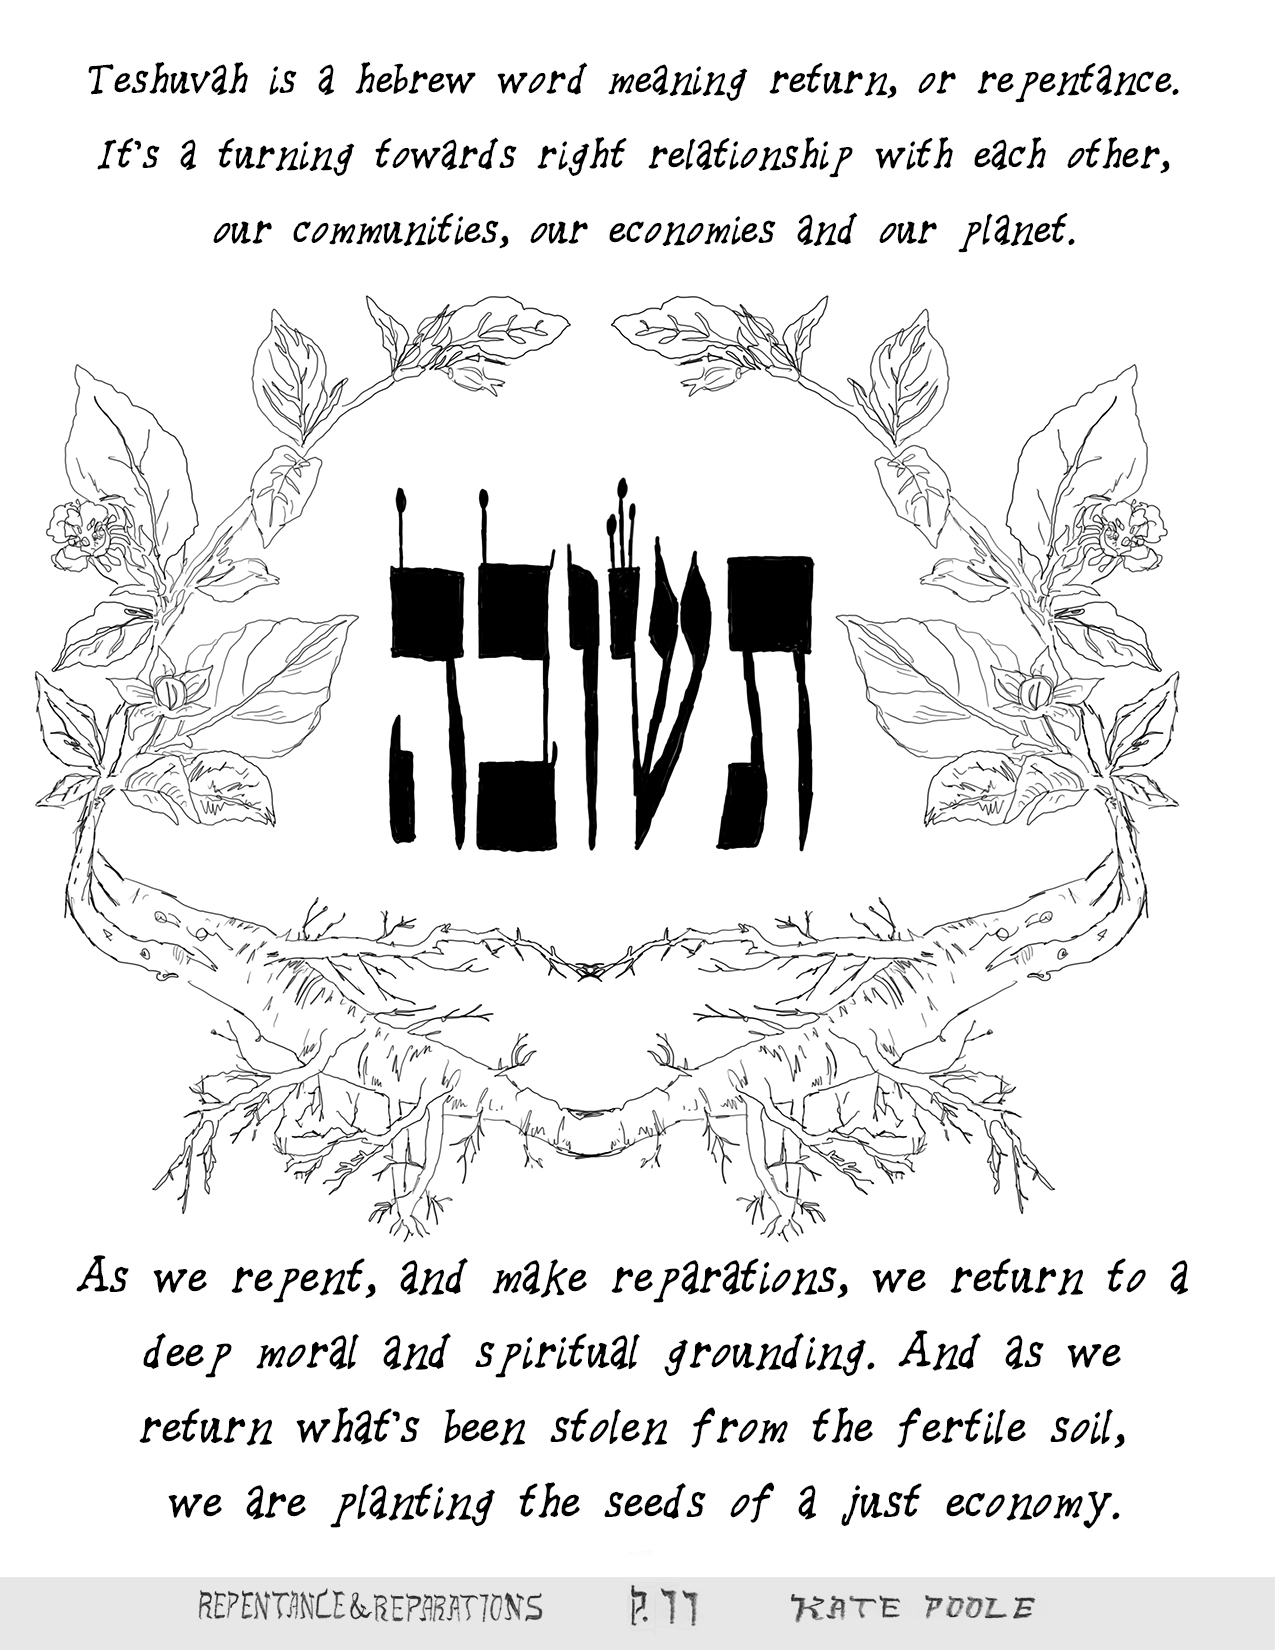 Teshuvah is a hebrew word meaning return, or repentance. It's a turning towards right relationships with each other, our communities, our economies and our planet.